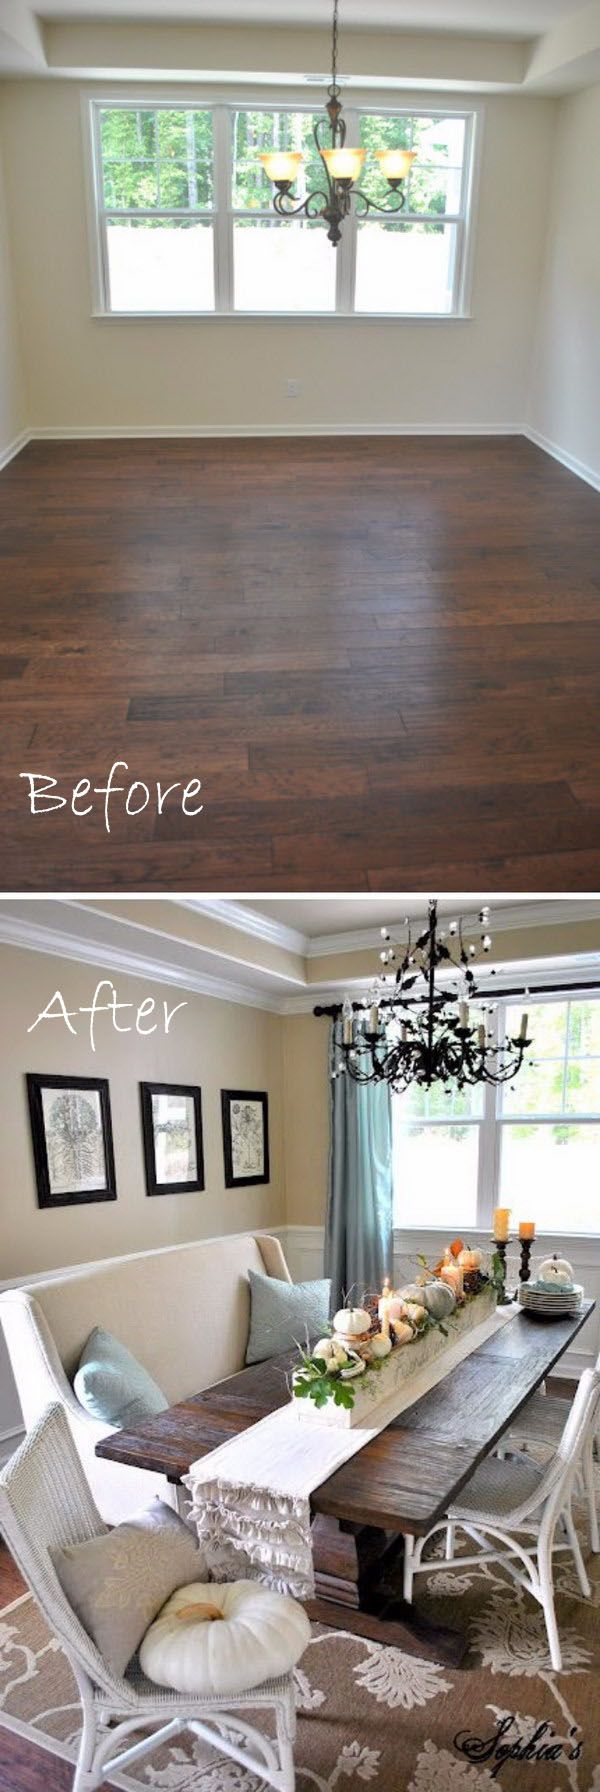 Room Redo Ideas best 25+ dining table makeover ideas on pinterest | dining table